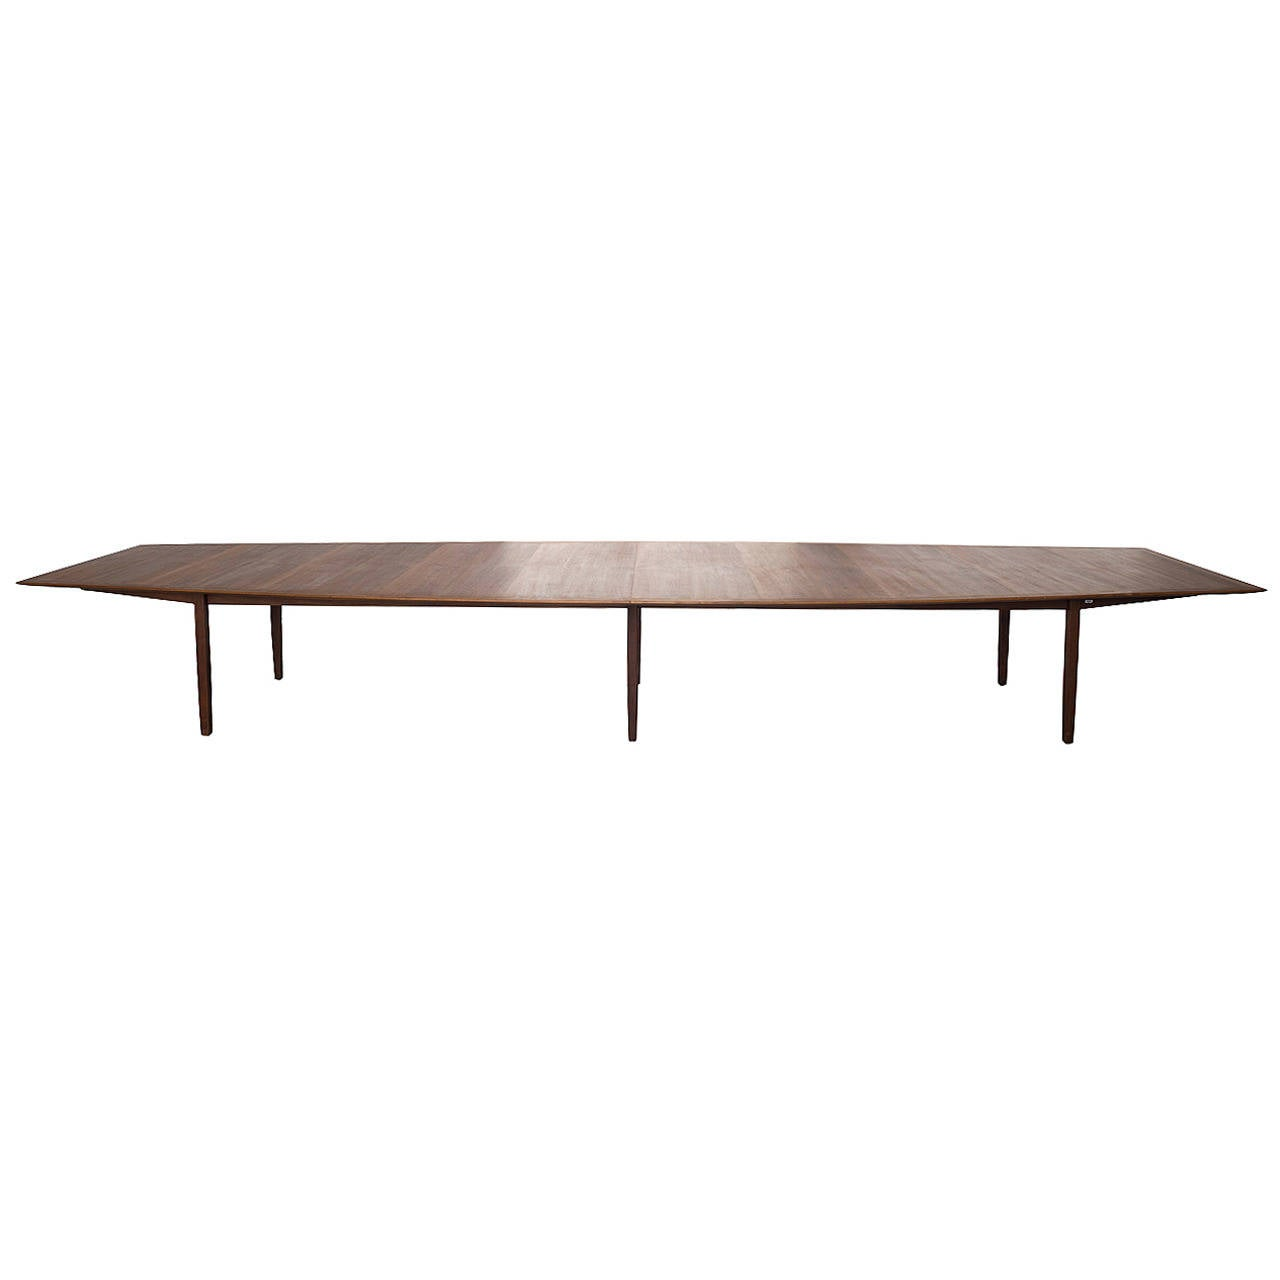 Extra long florence knoll dining conference table at 1stdibs for Long dining table